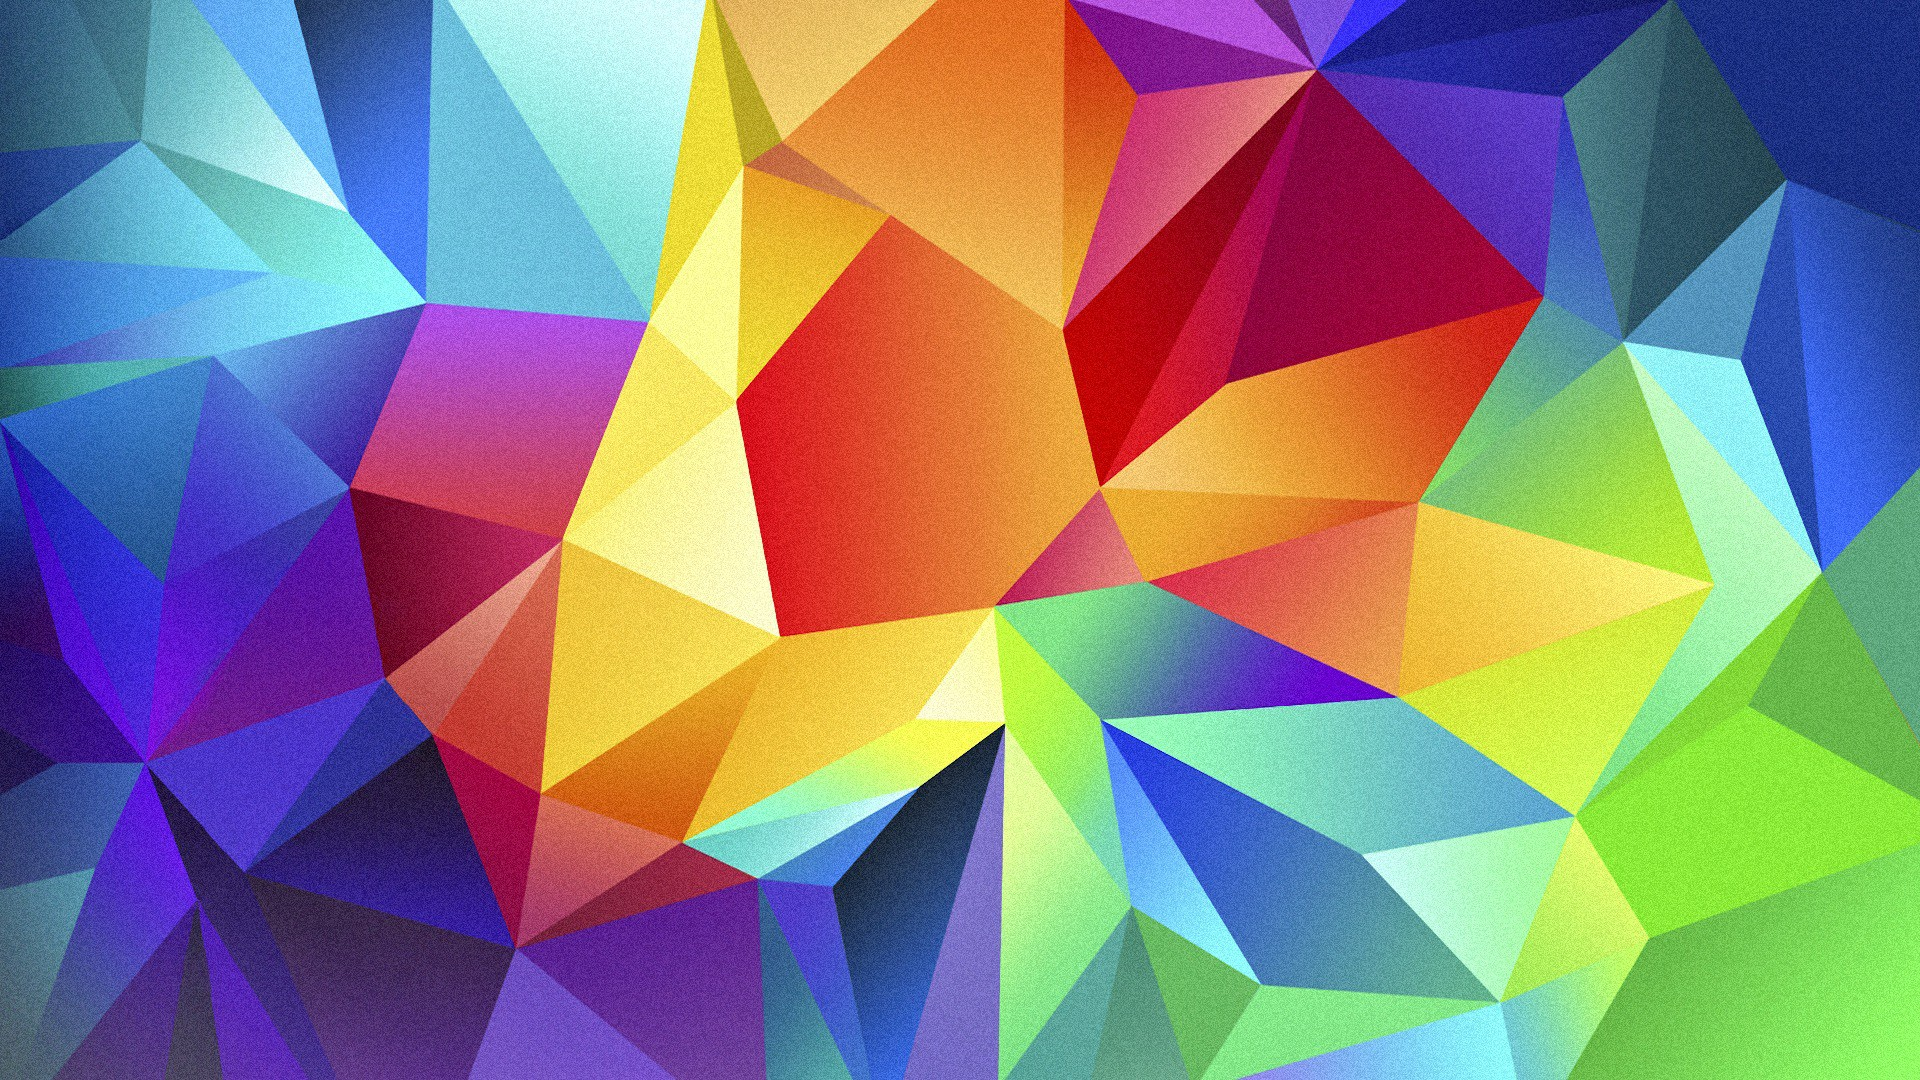 полигон, 4k, HD, цветной, андроид, фон, polygon, 4k, HD wallpaper, android, triangle, background, orange, red, blue, pattern (horizontal)